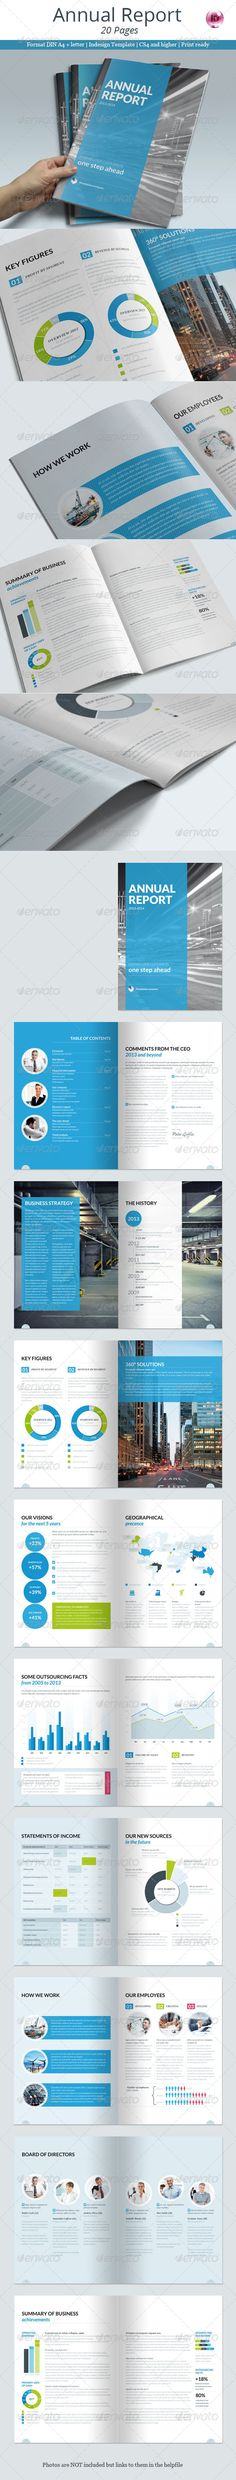 Annual Report 20 Pages - Informational Brochures